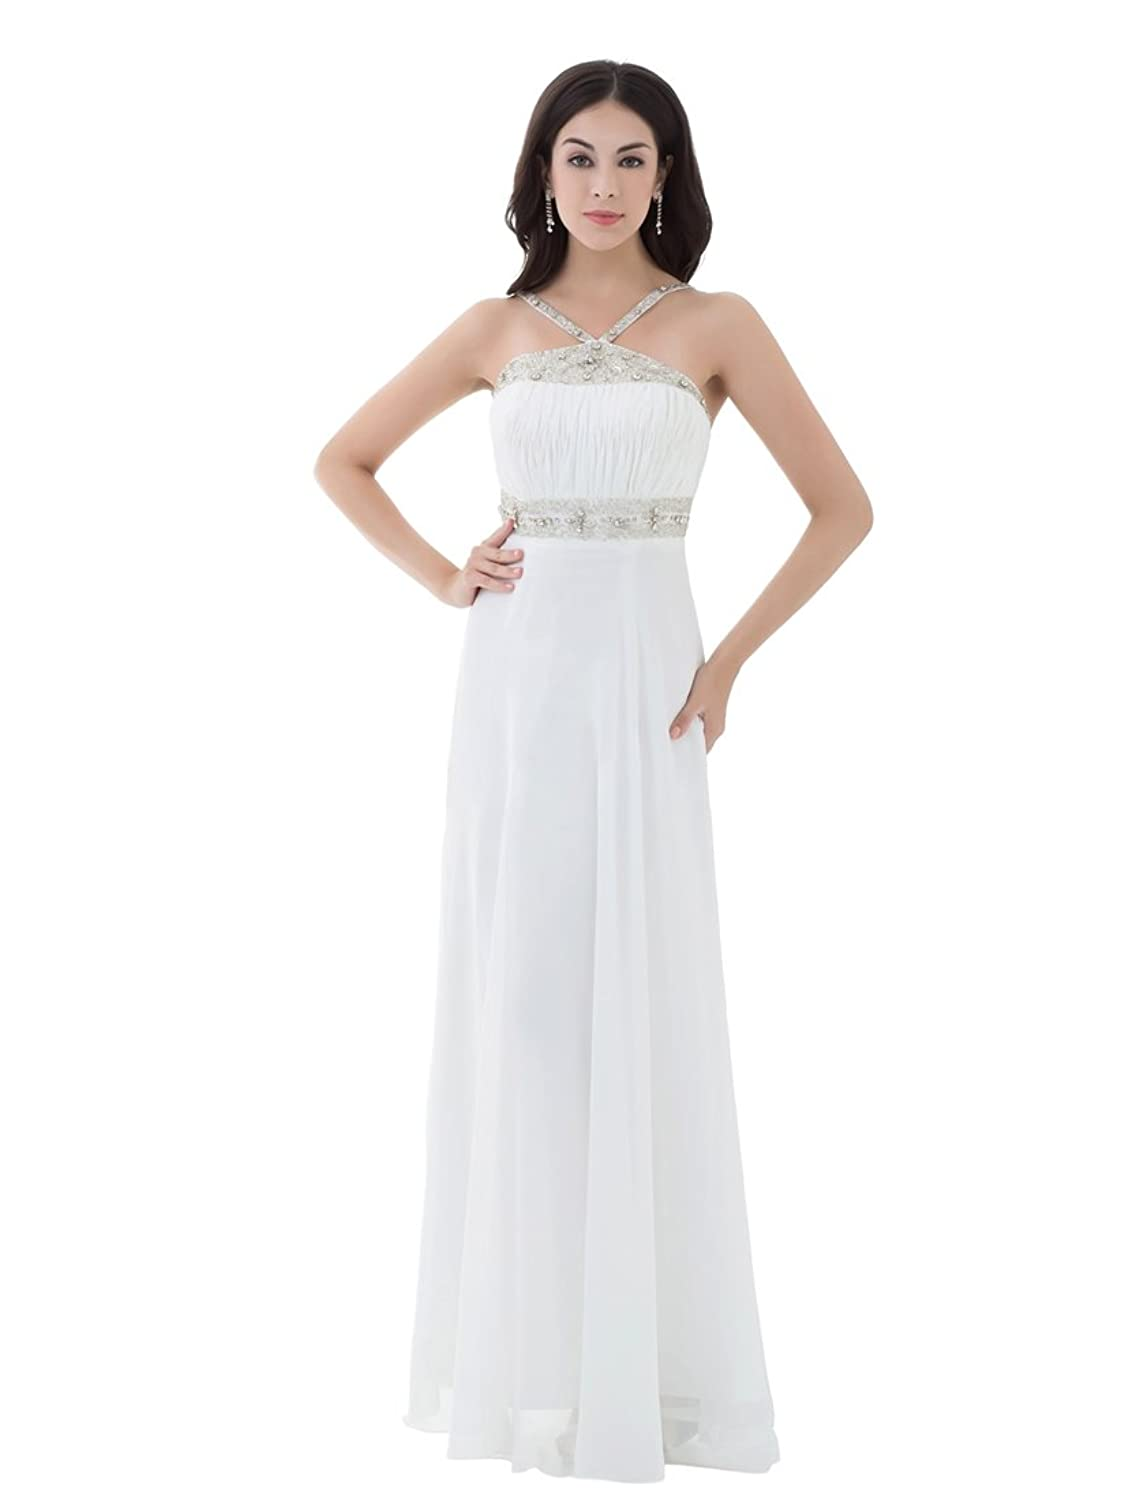 Topwedding Beaded Straps Chiffon Empire Bridal Beach Wedding Dress Womens